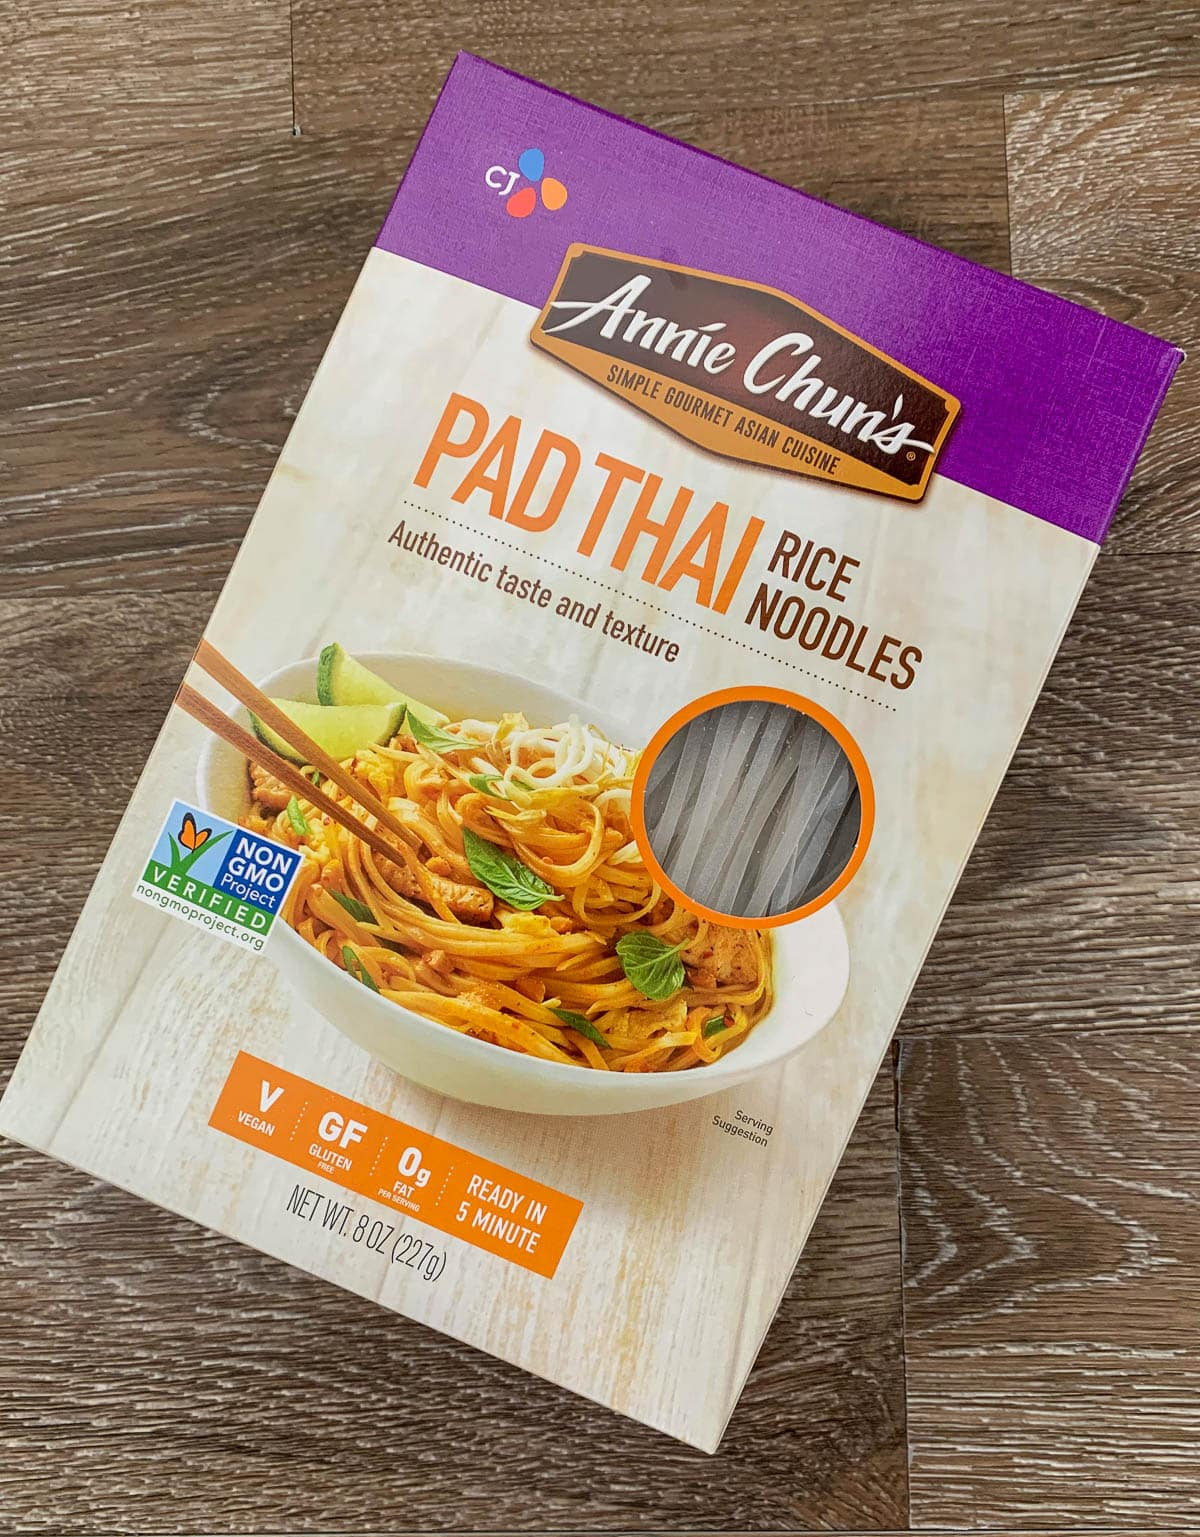 box of pad thai rice noodles